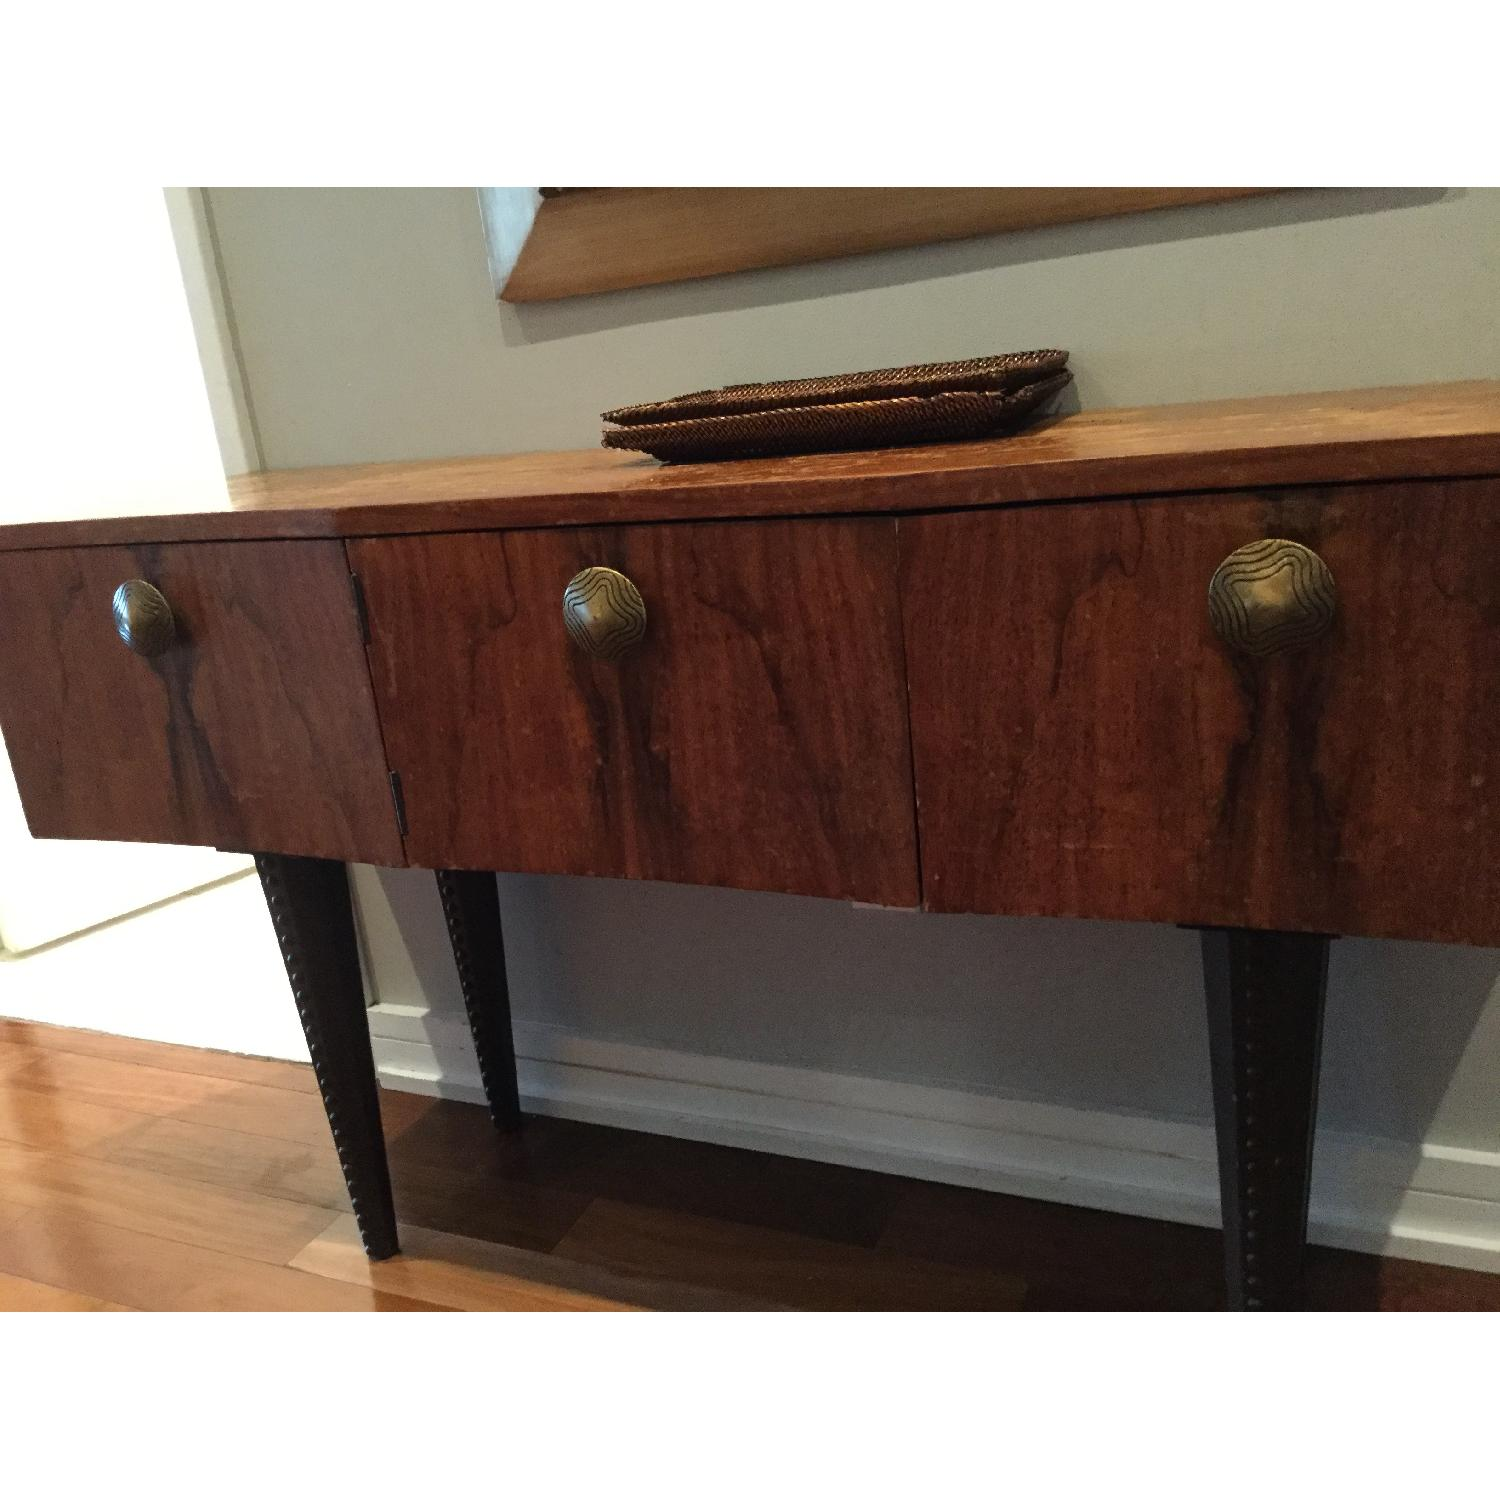 Gilbert Rhode Antique Console Table - image-3